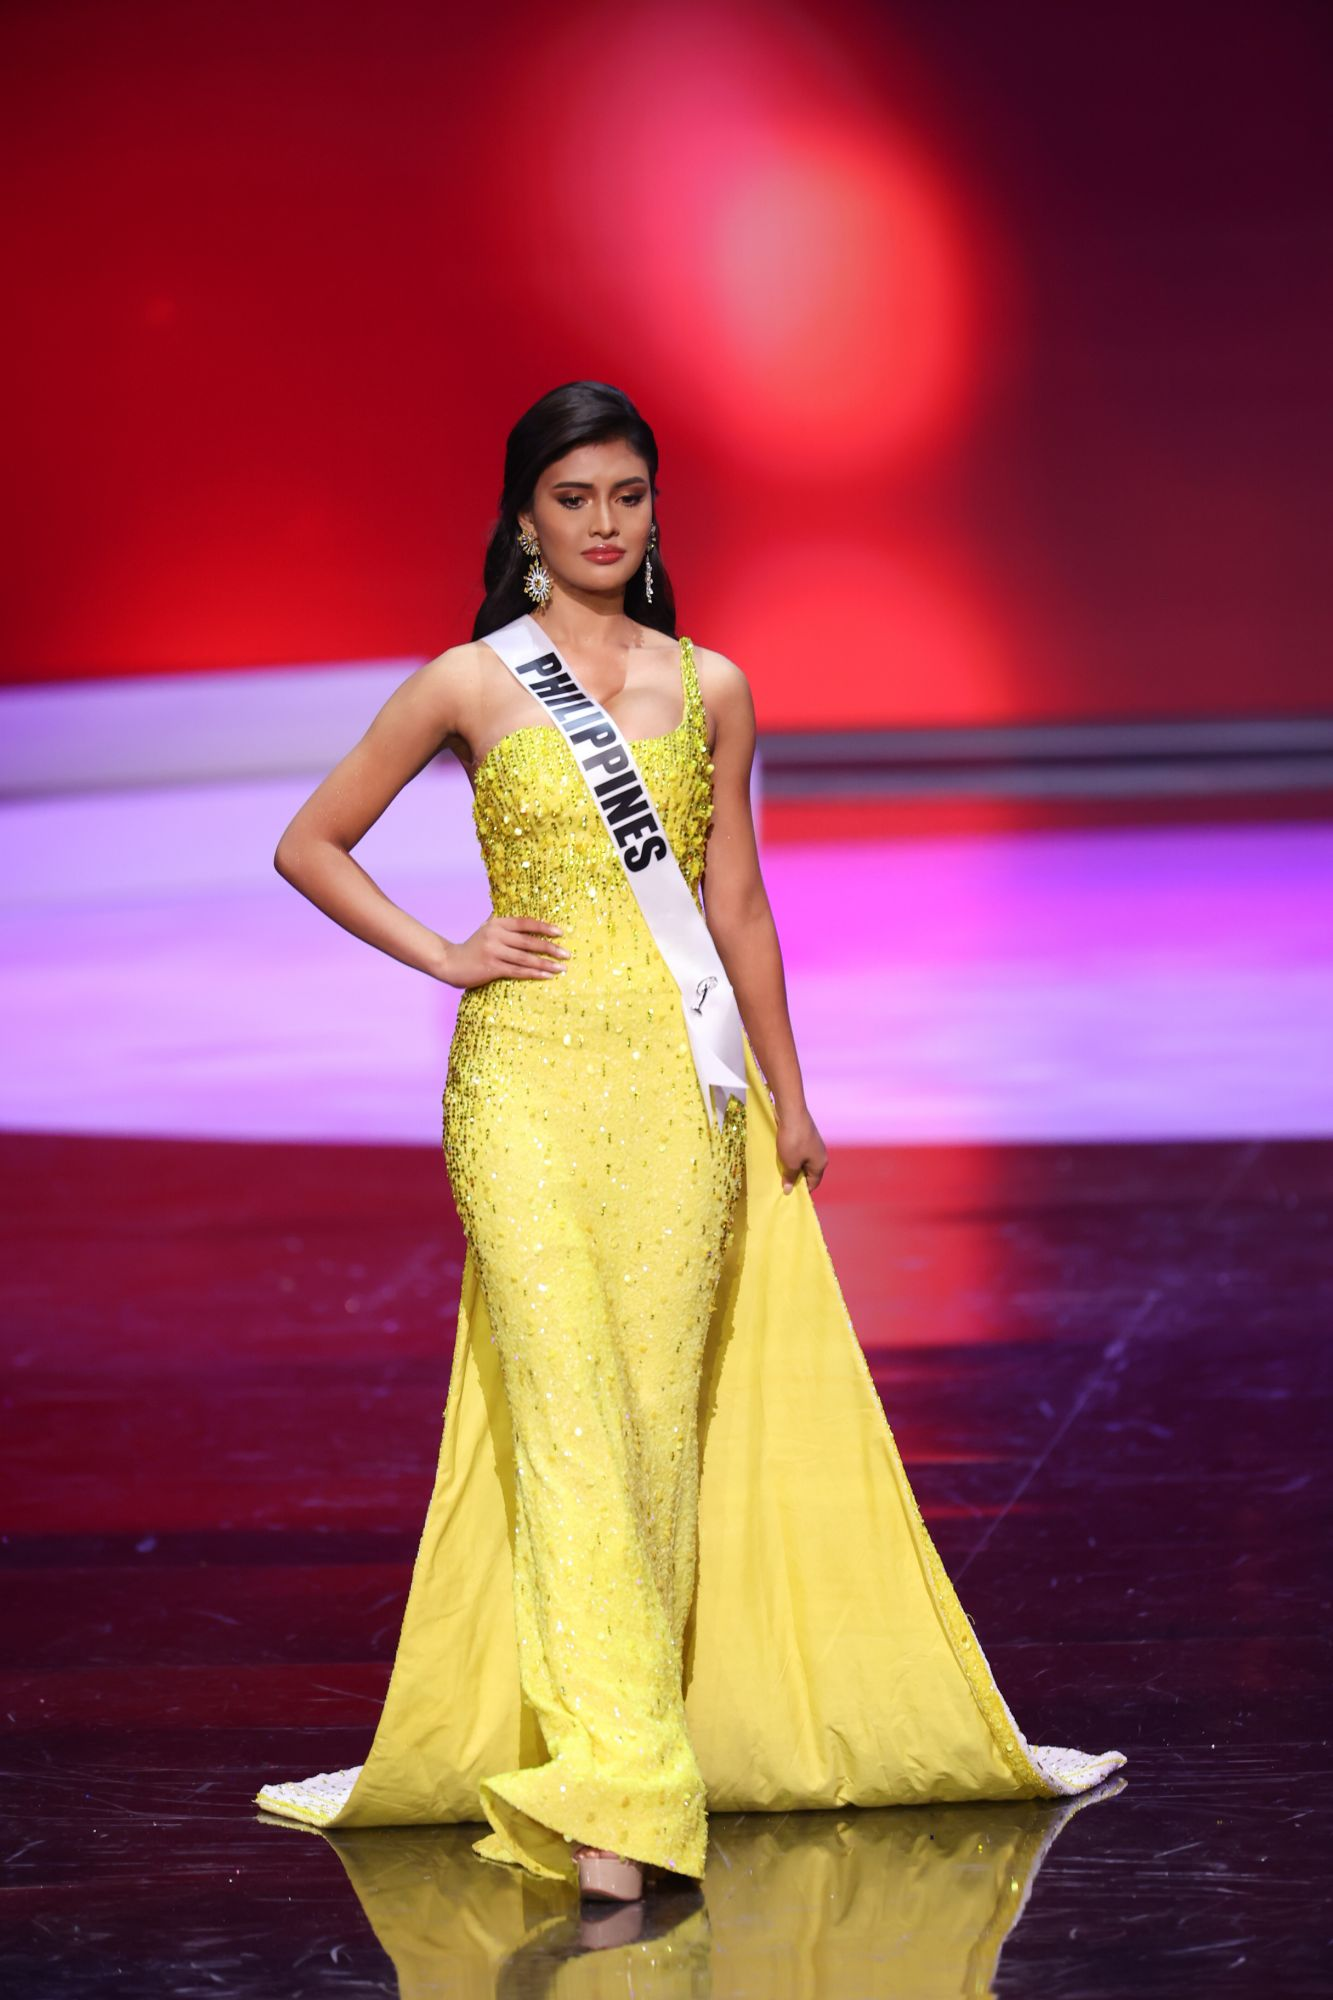 HOLLYWOOD, FLORIDA - MAY 14: Miss Philippines Rabiya Mateo appears onstage at the Miss Universe 2021  Preliminary Competition at Seminole Hard Rock Hotel & Casino on May 14, 2021 in Hollywood, Florida. (Photo by Rodrigo Varela/Getty Images)